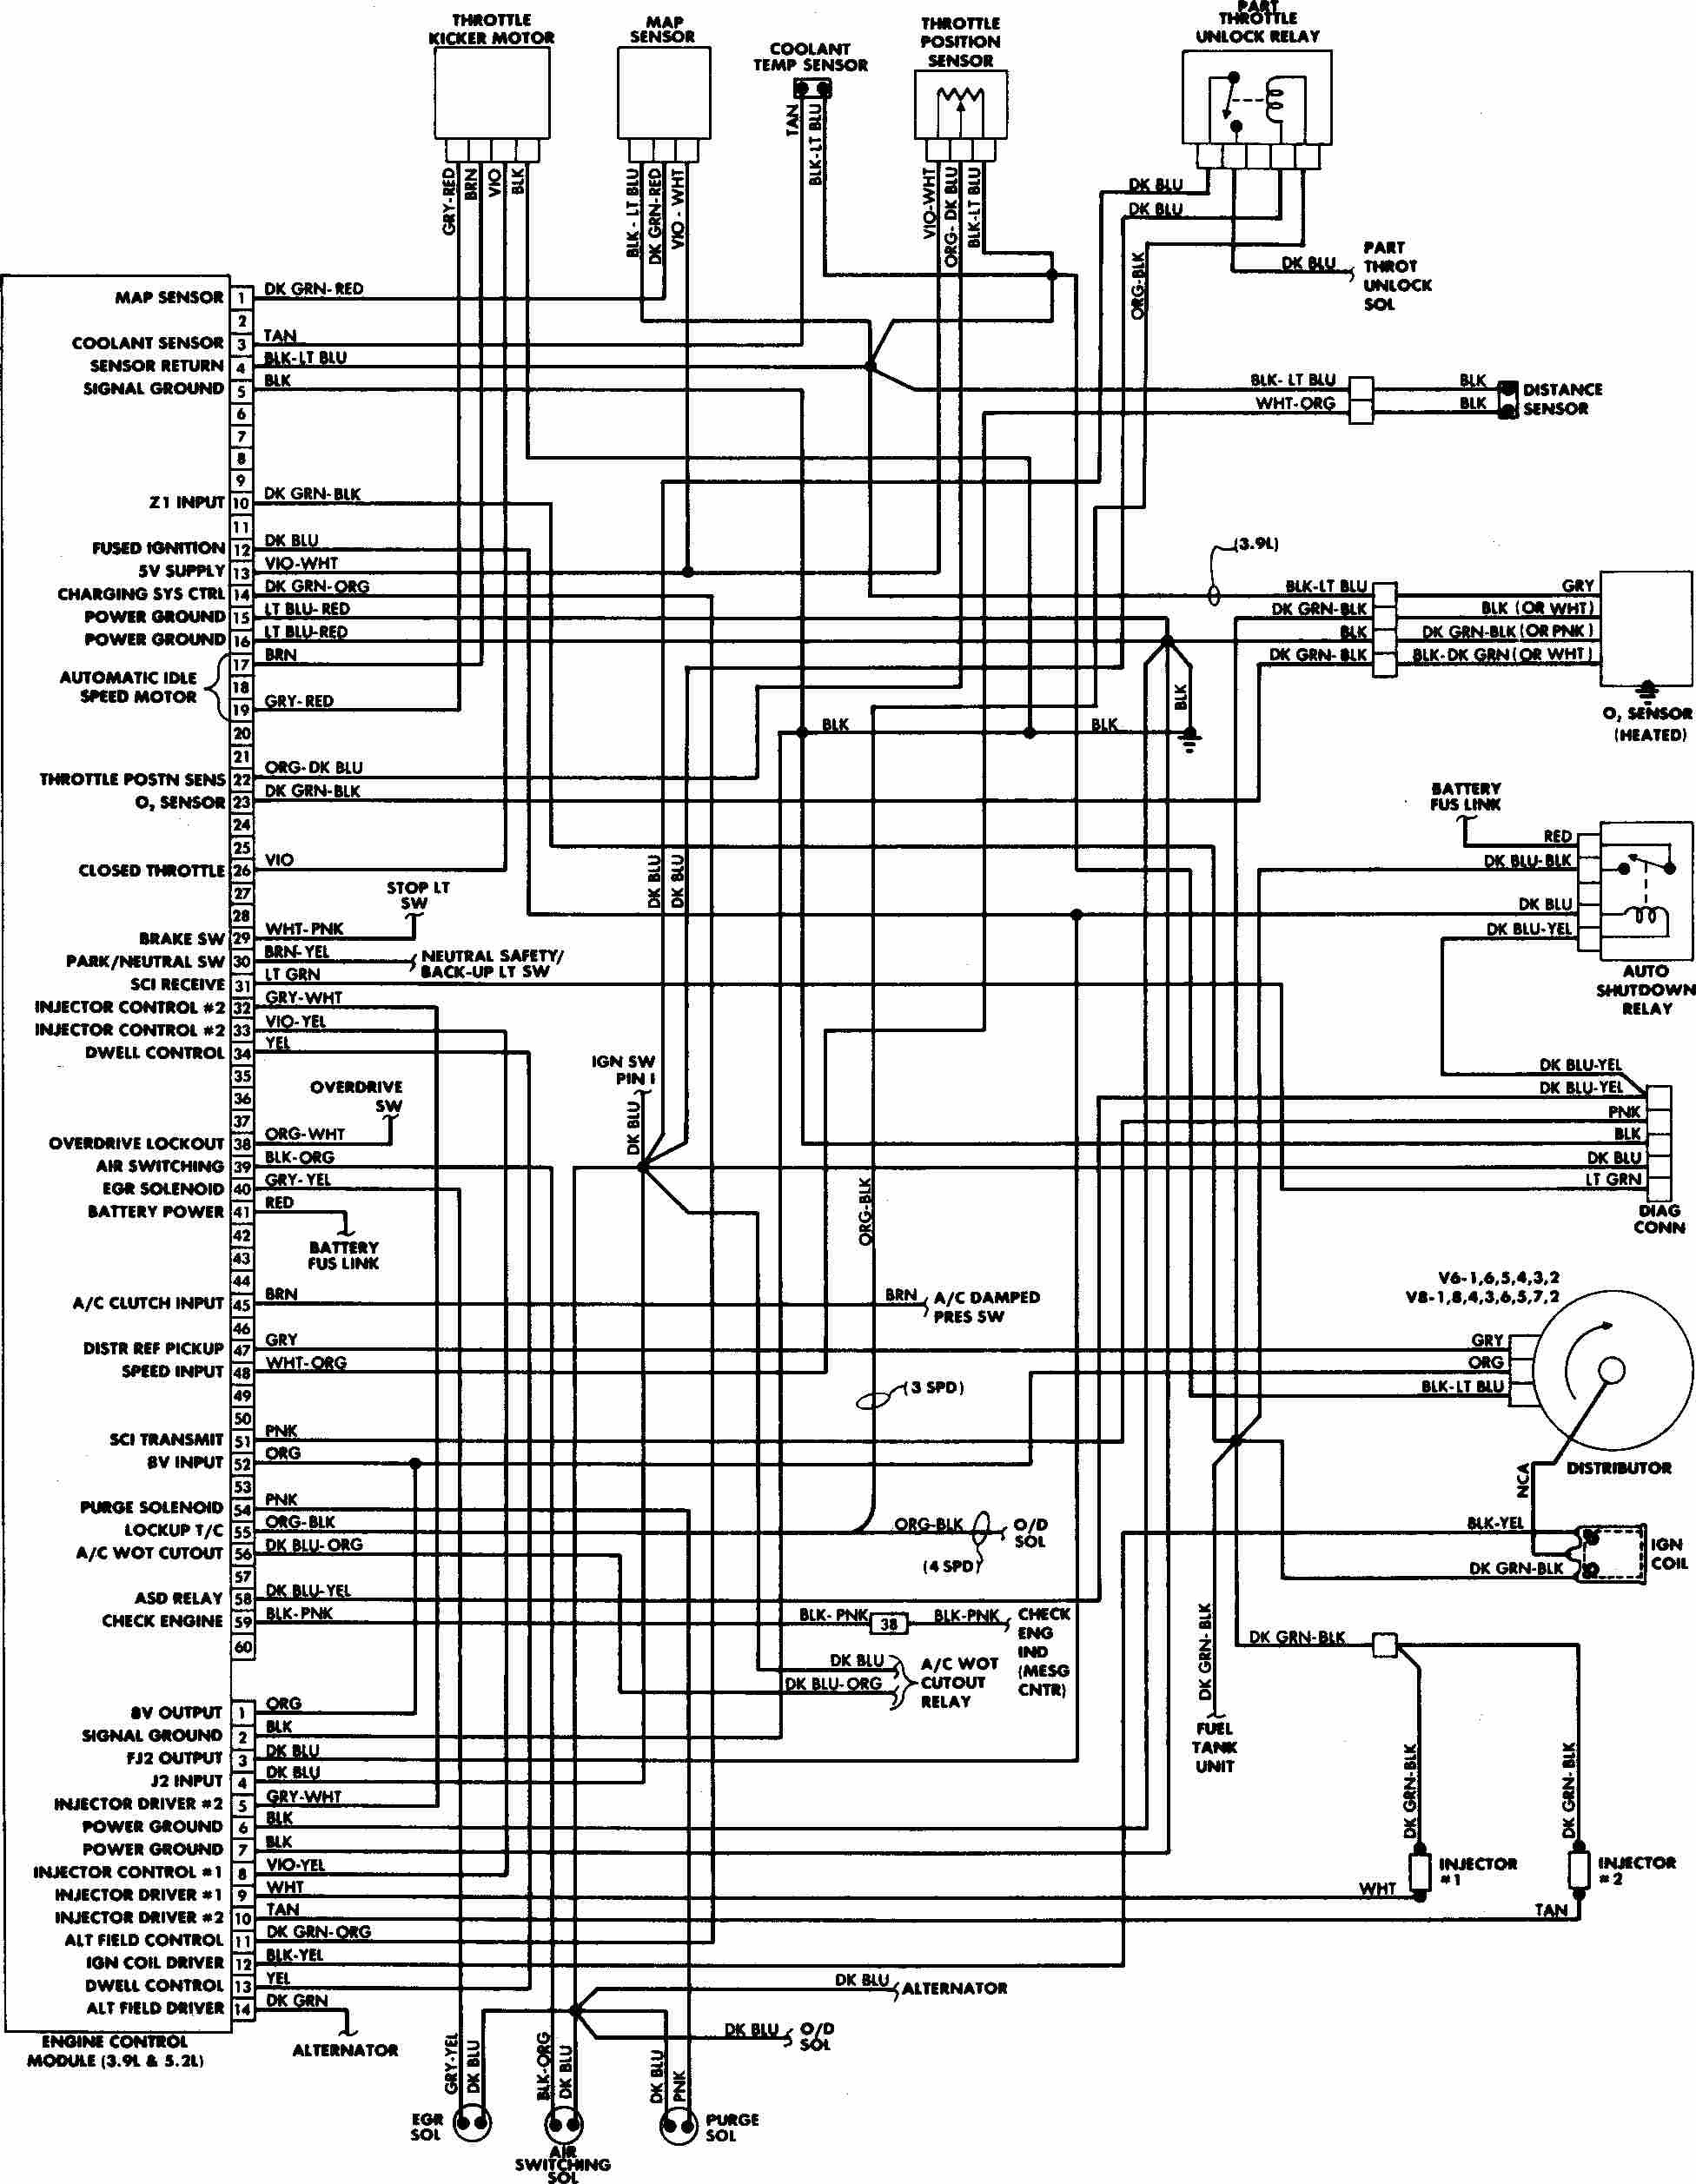 Diagram Of Subaru Engine